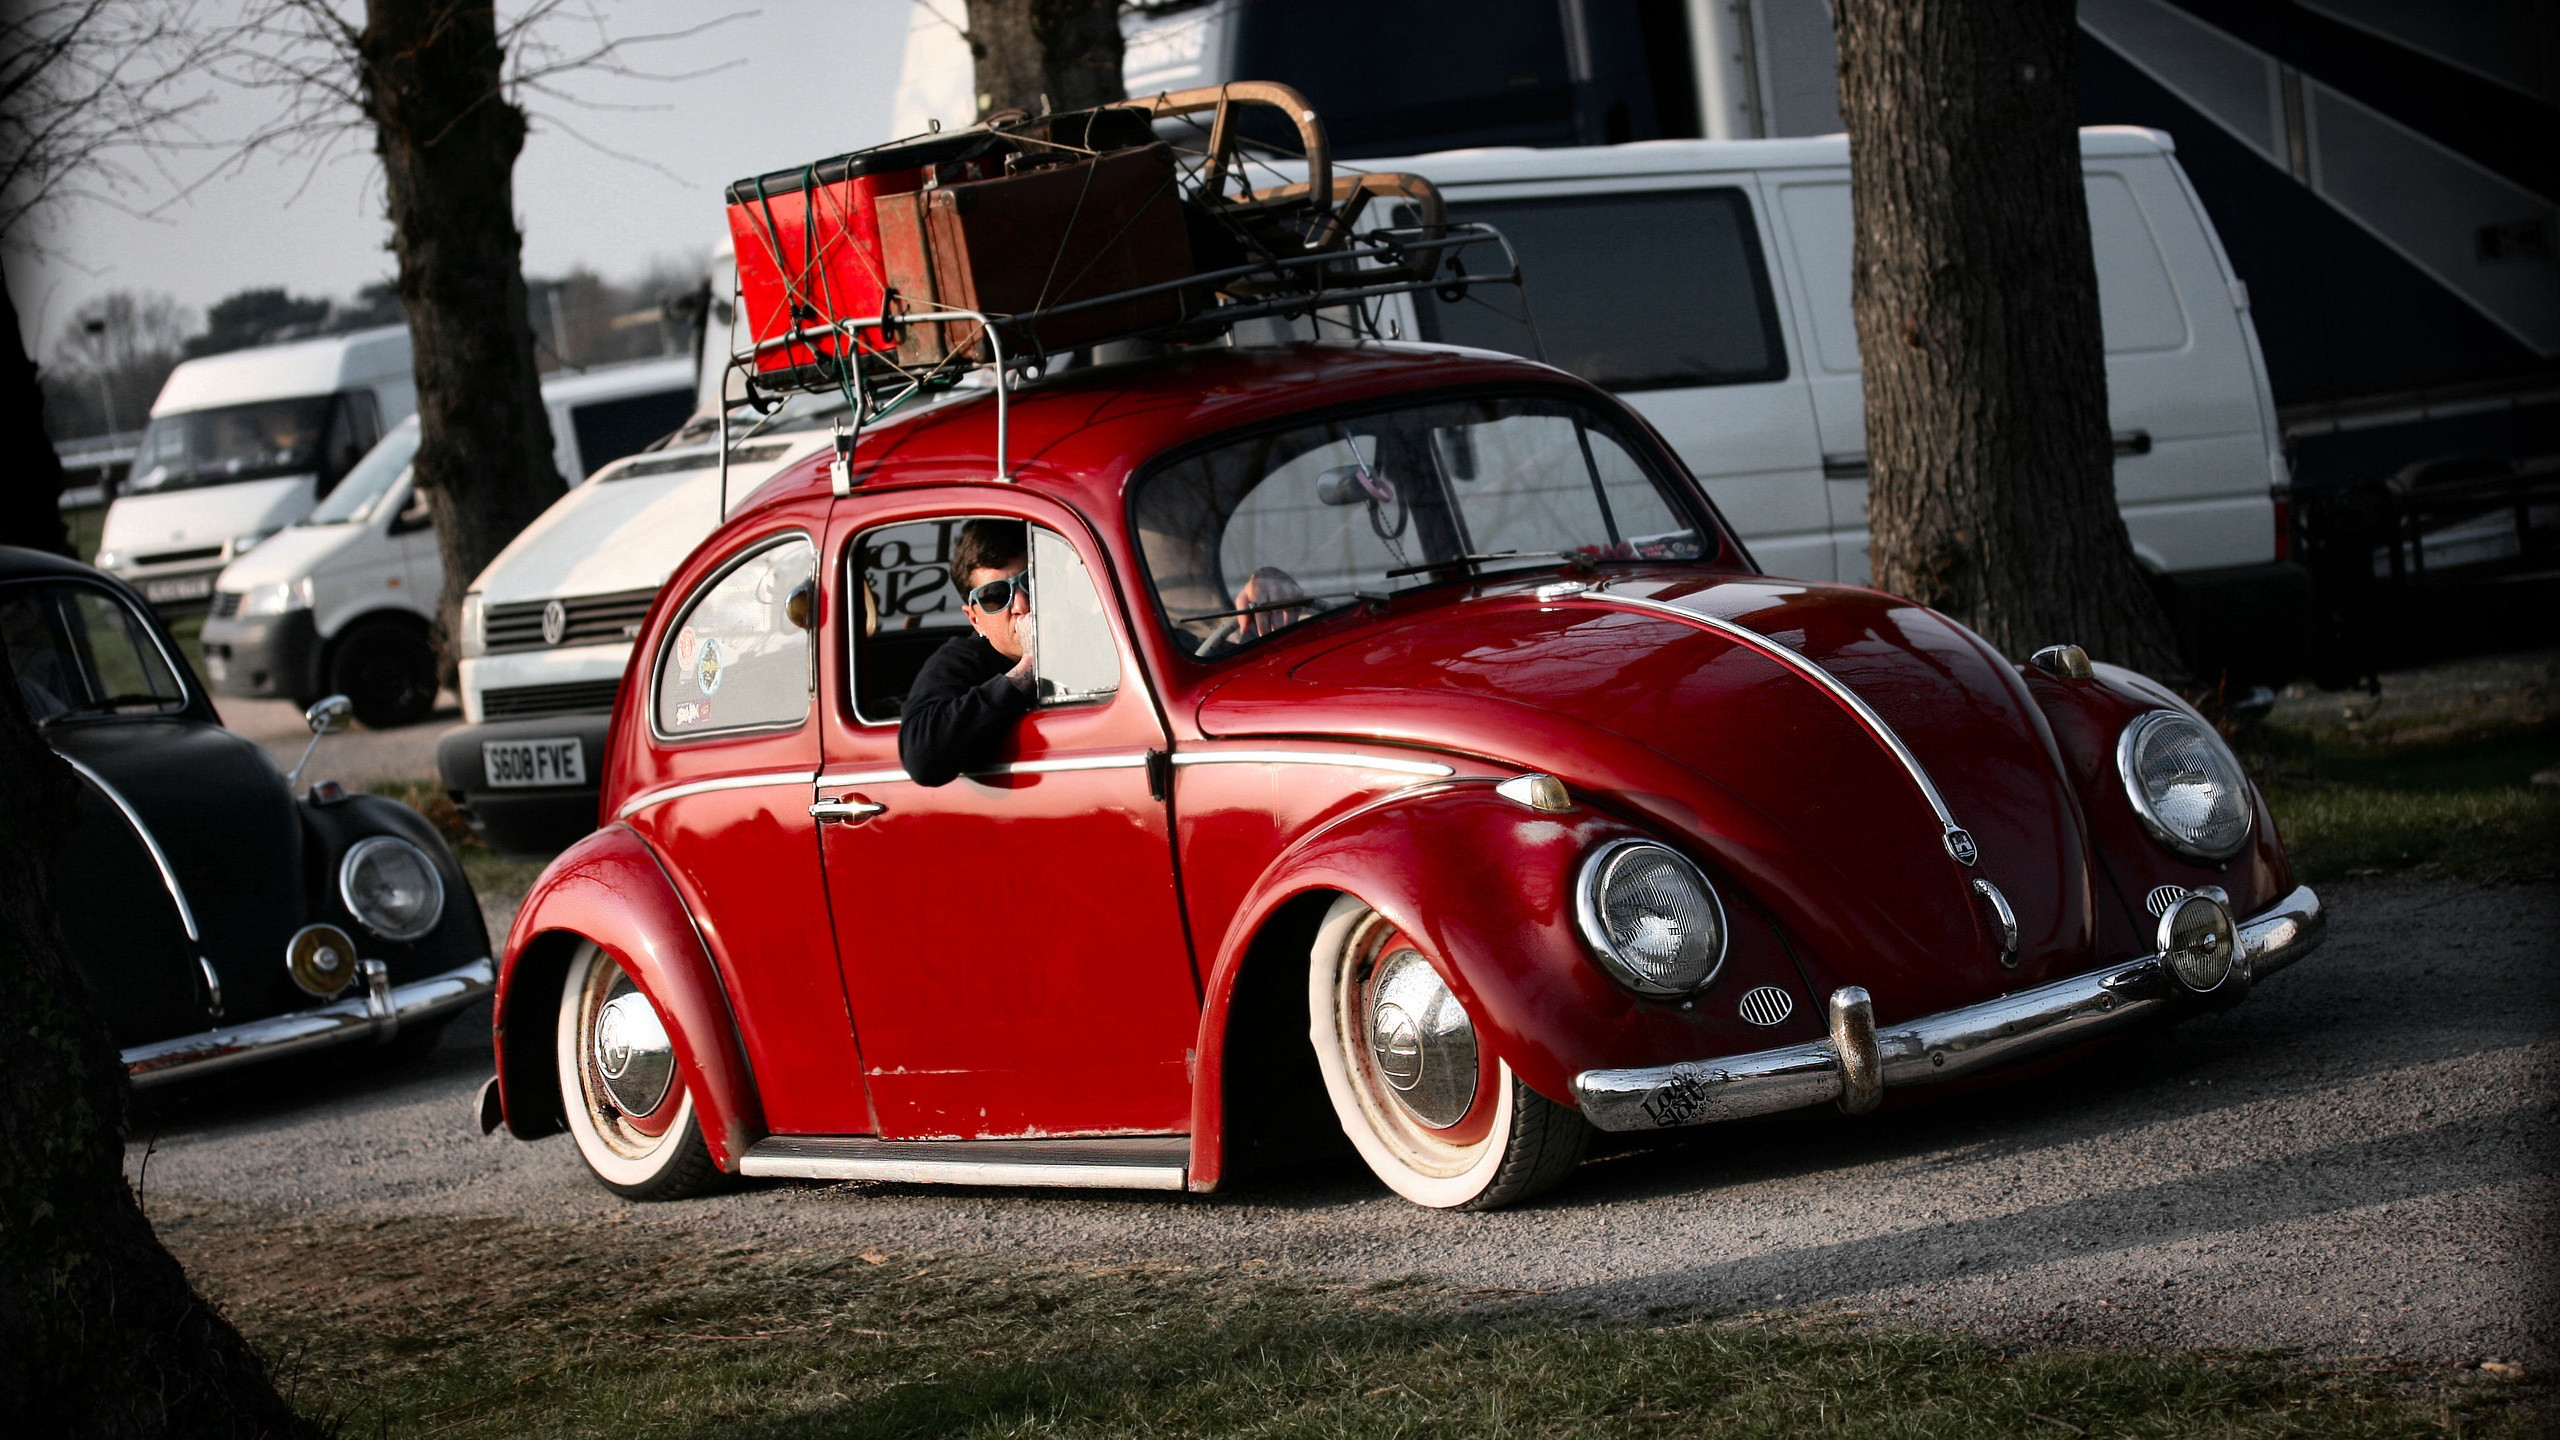 Best Wallpaper Gallery With Pc Wallpaper Volkswagen